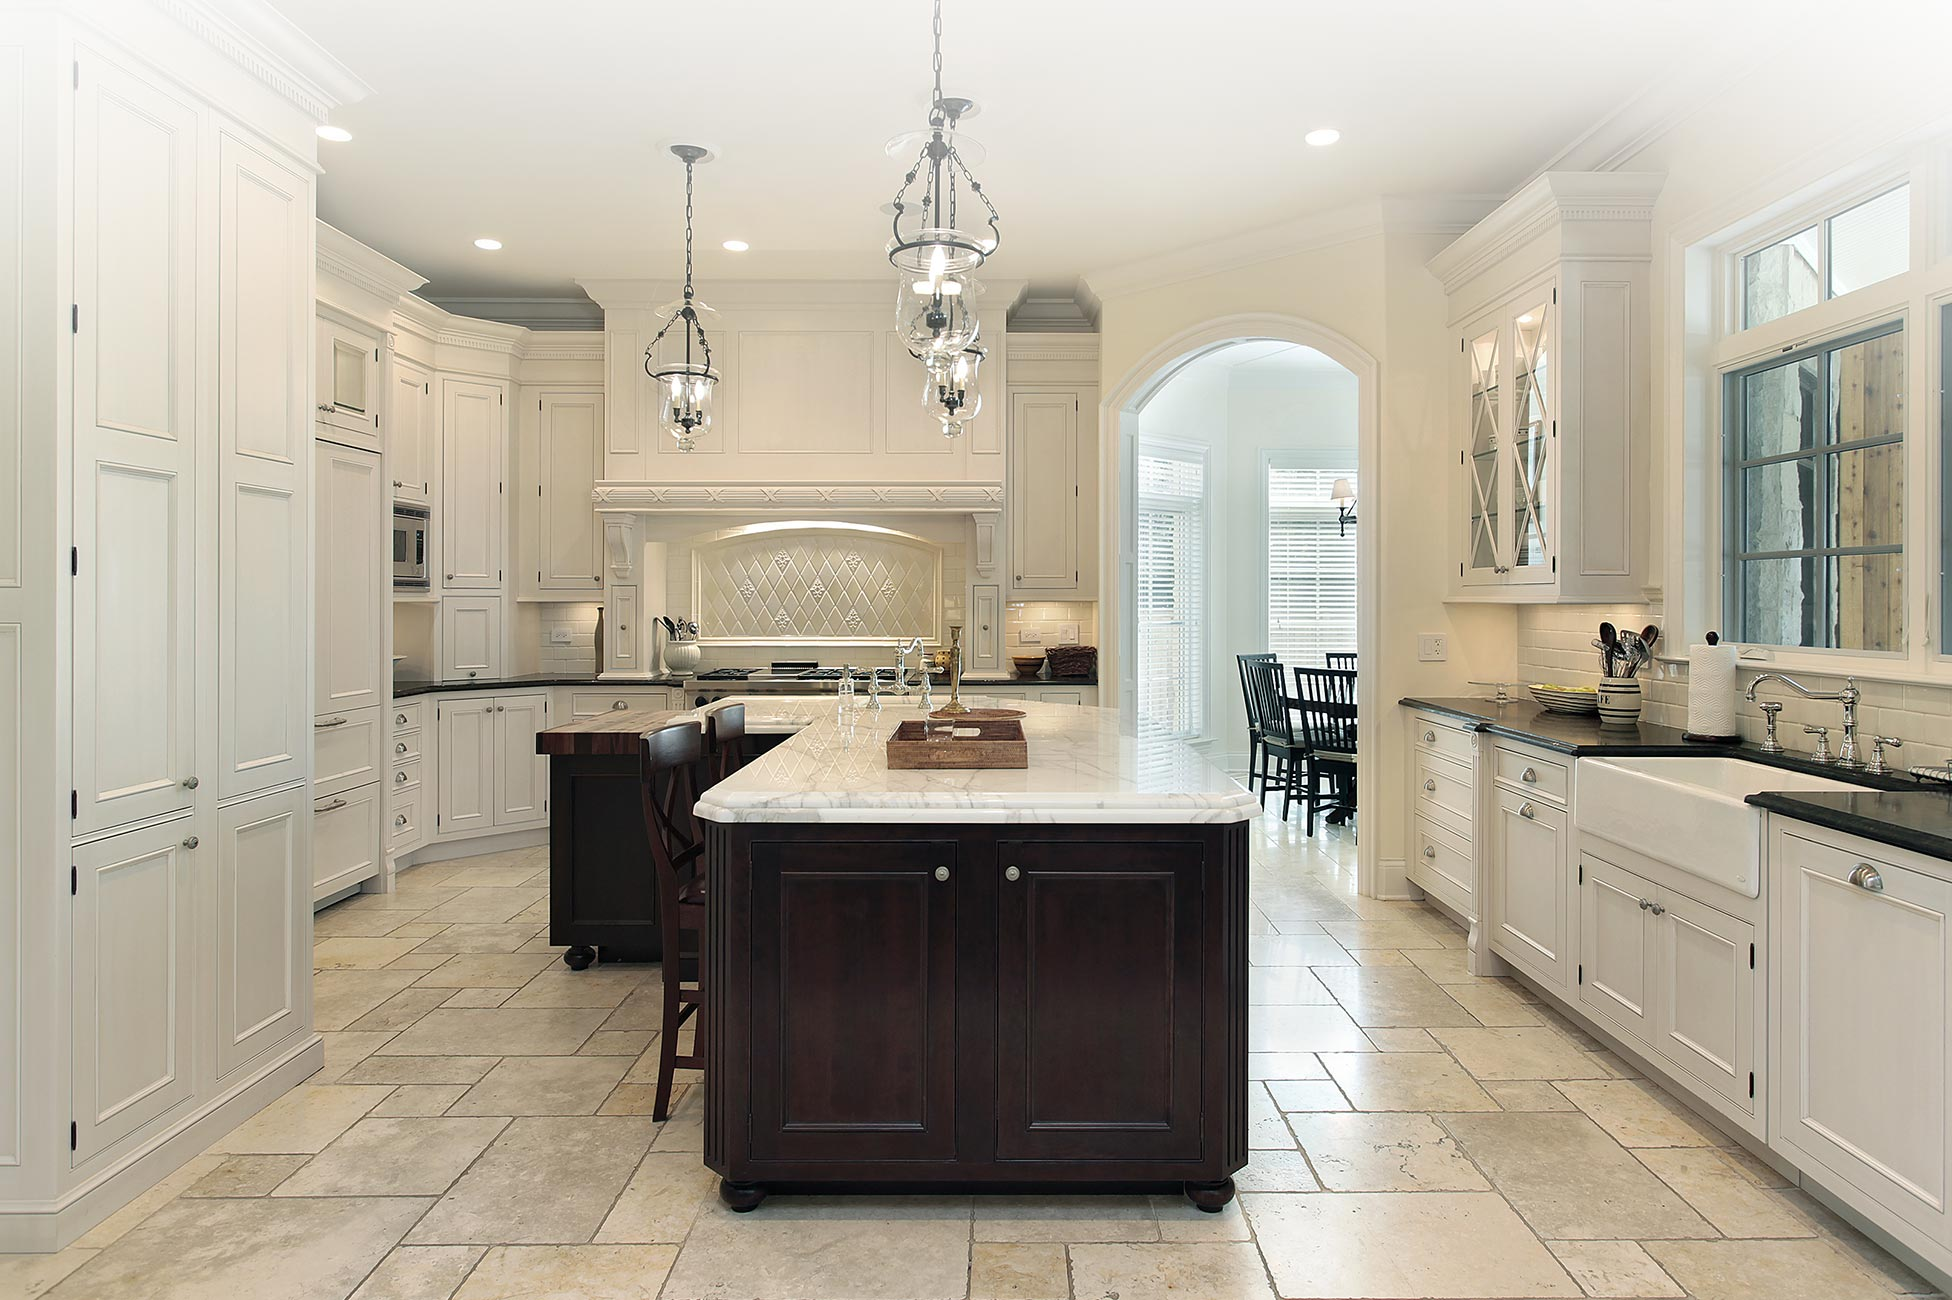 Southbrook Cabinetry High Quality Designer Kitchens